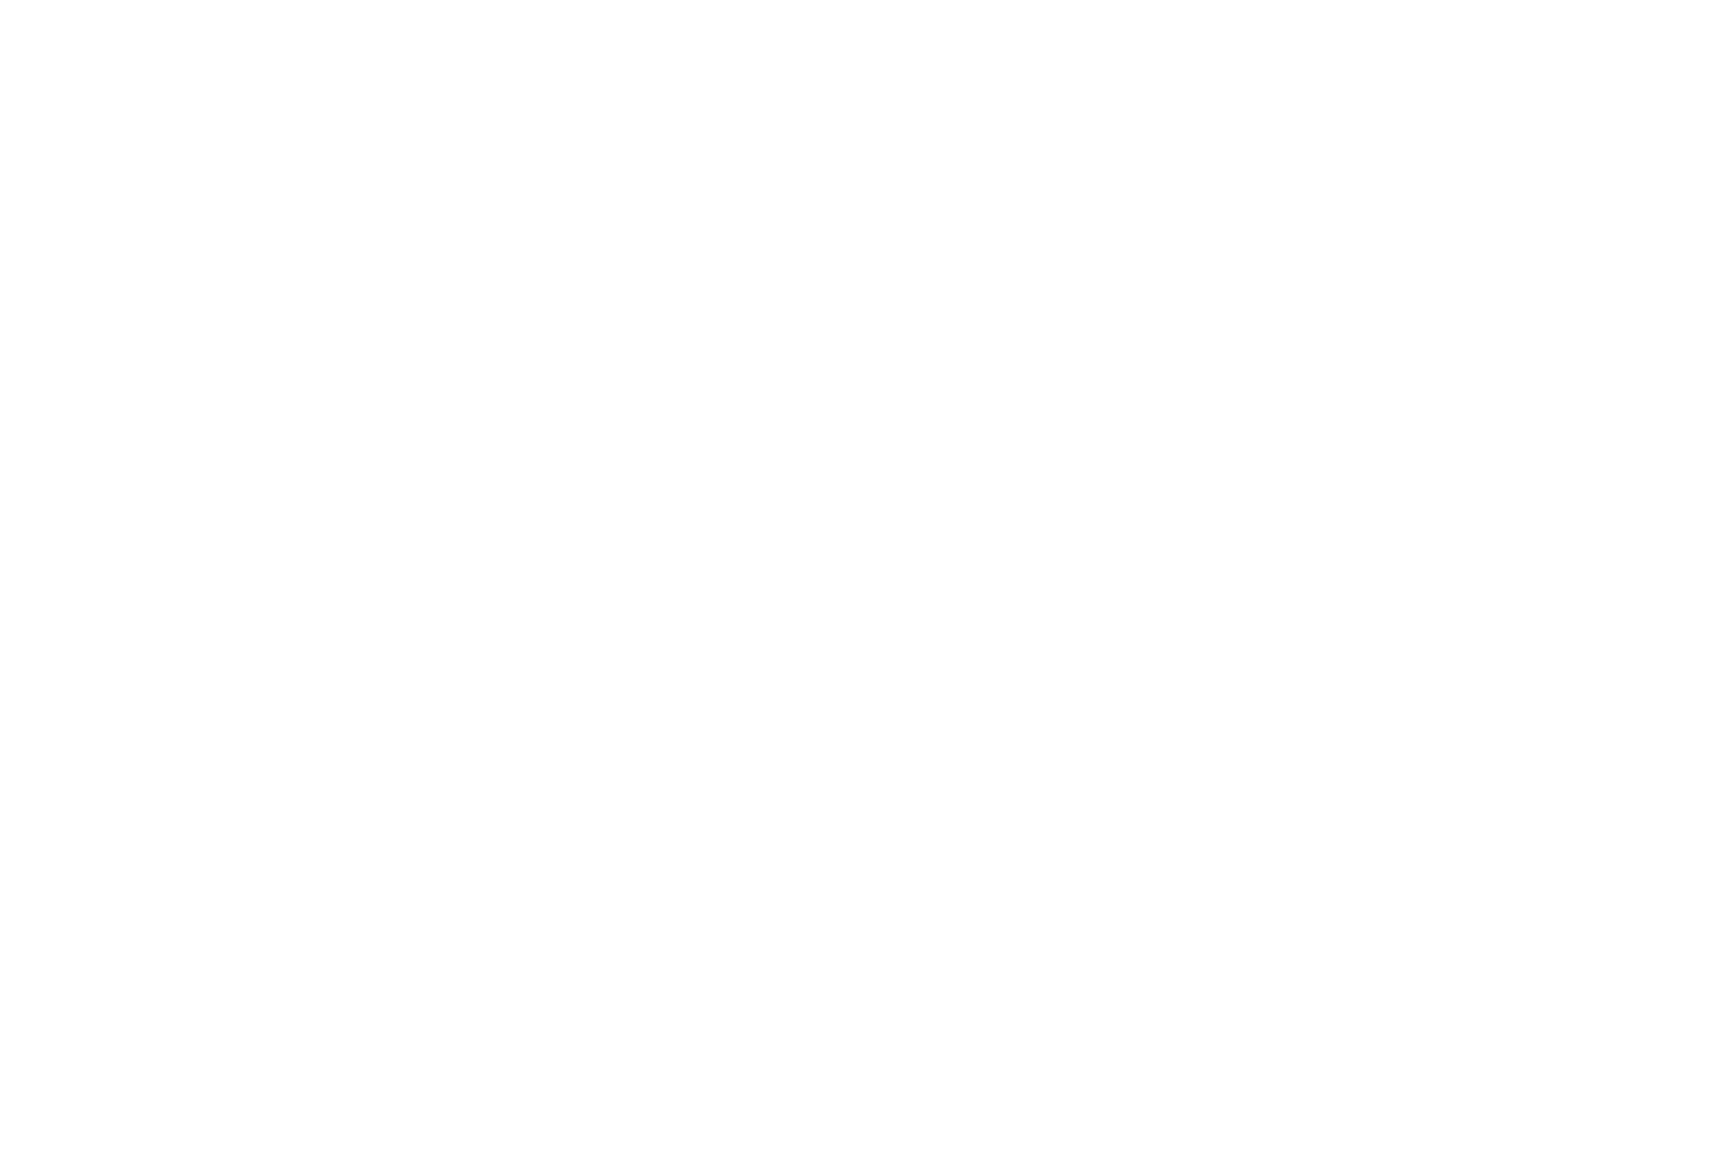 FINALIST - Charleston Intl Film Festival Screenplay Competition